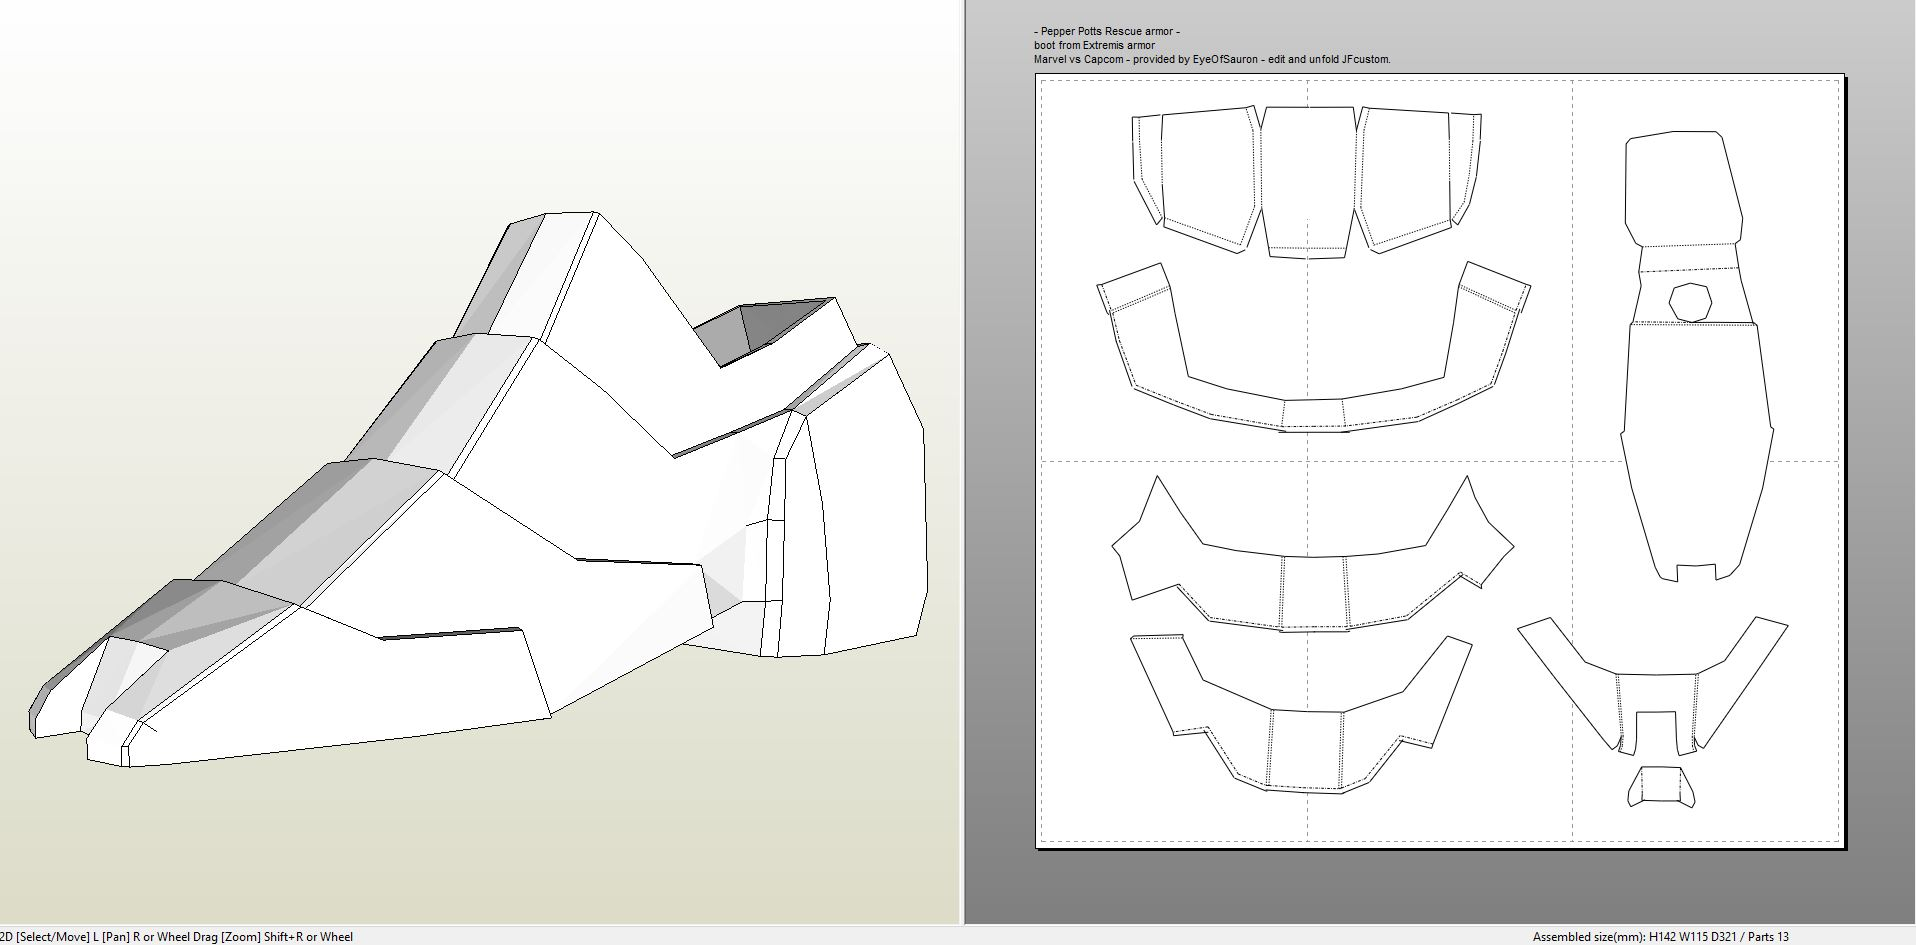 Foamcraft .pdo file template for Iron Man - Pepper Potts ...  Iron